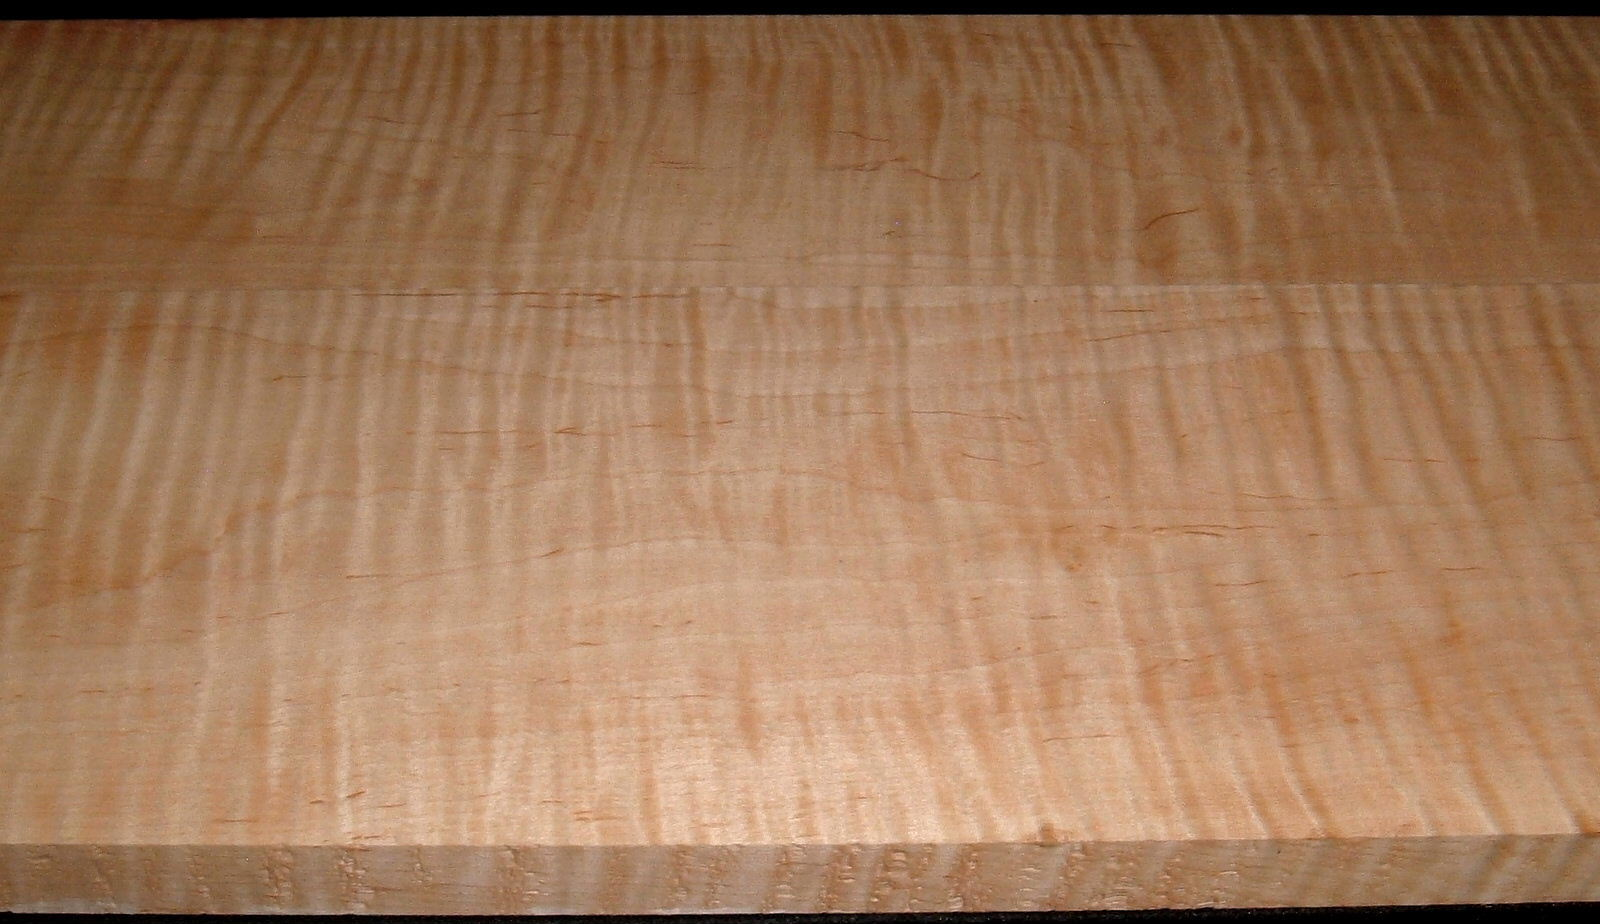 M2007-543, 2 Bd Set, 1-1/16x5-7/8x41, 1-1/8x7-3/4x41, Curly Tiger Maple